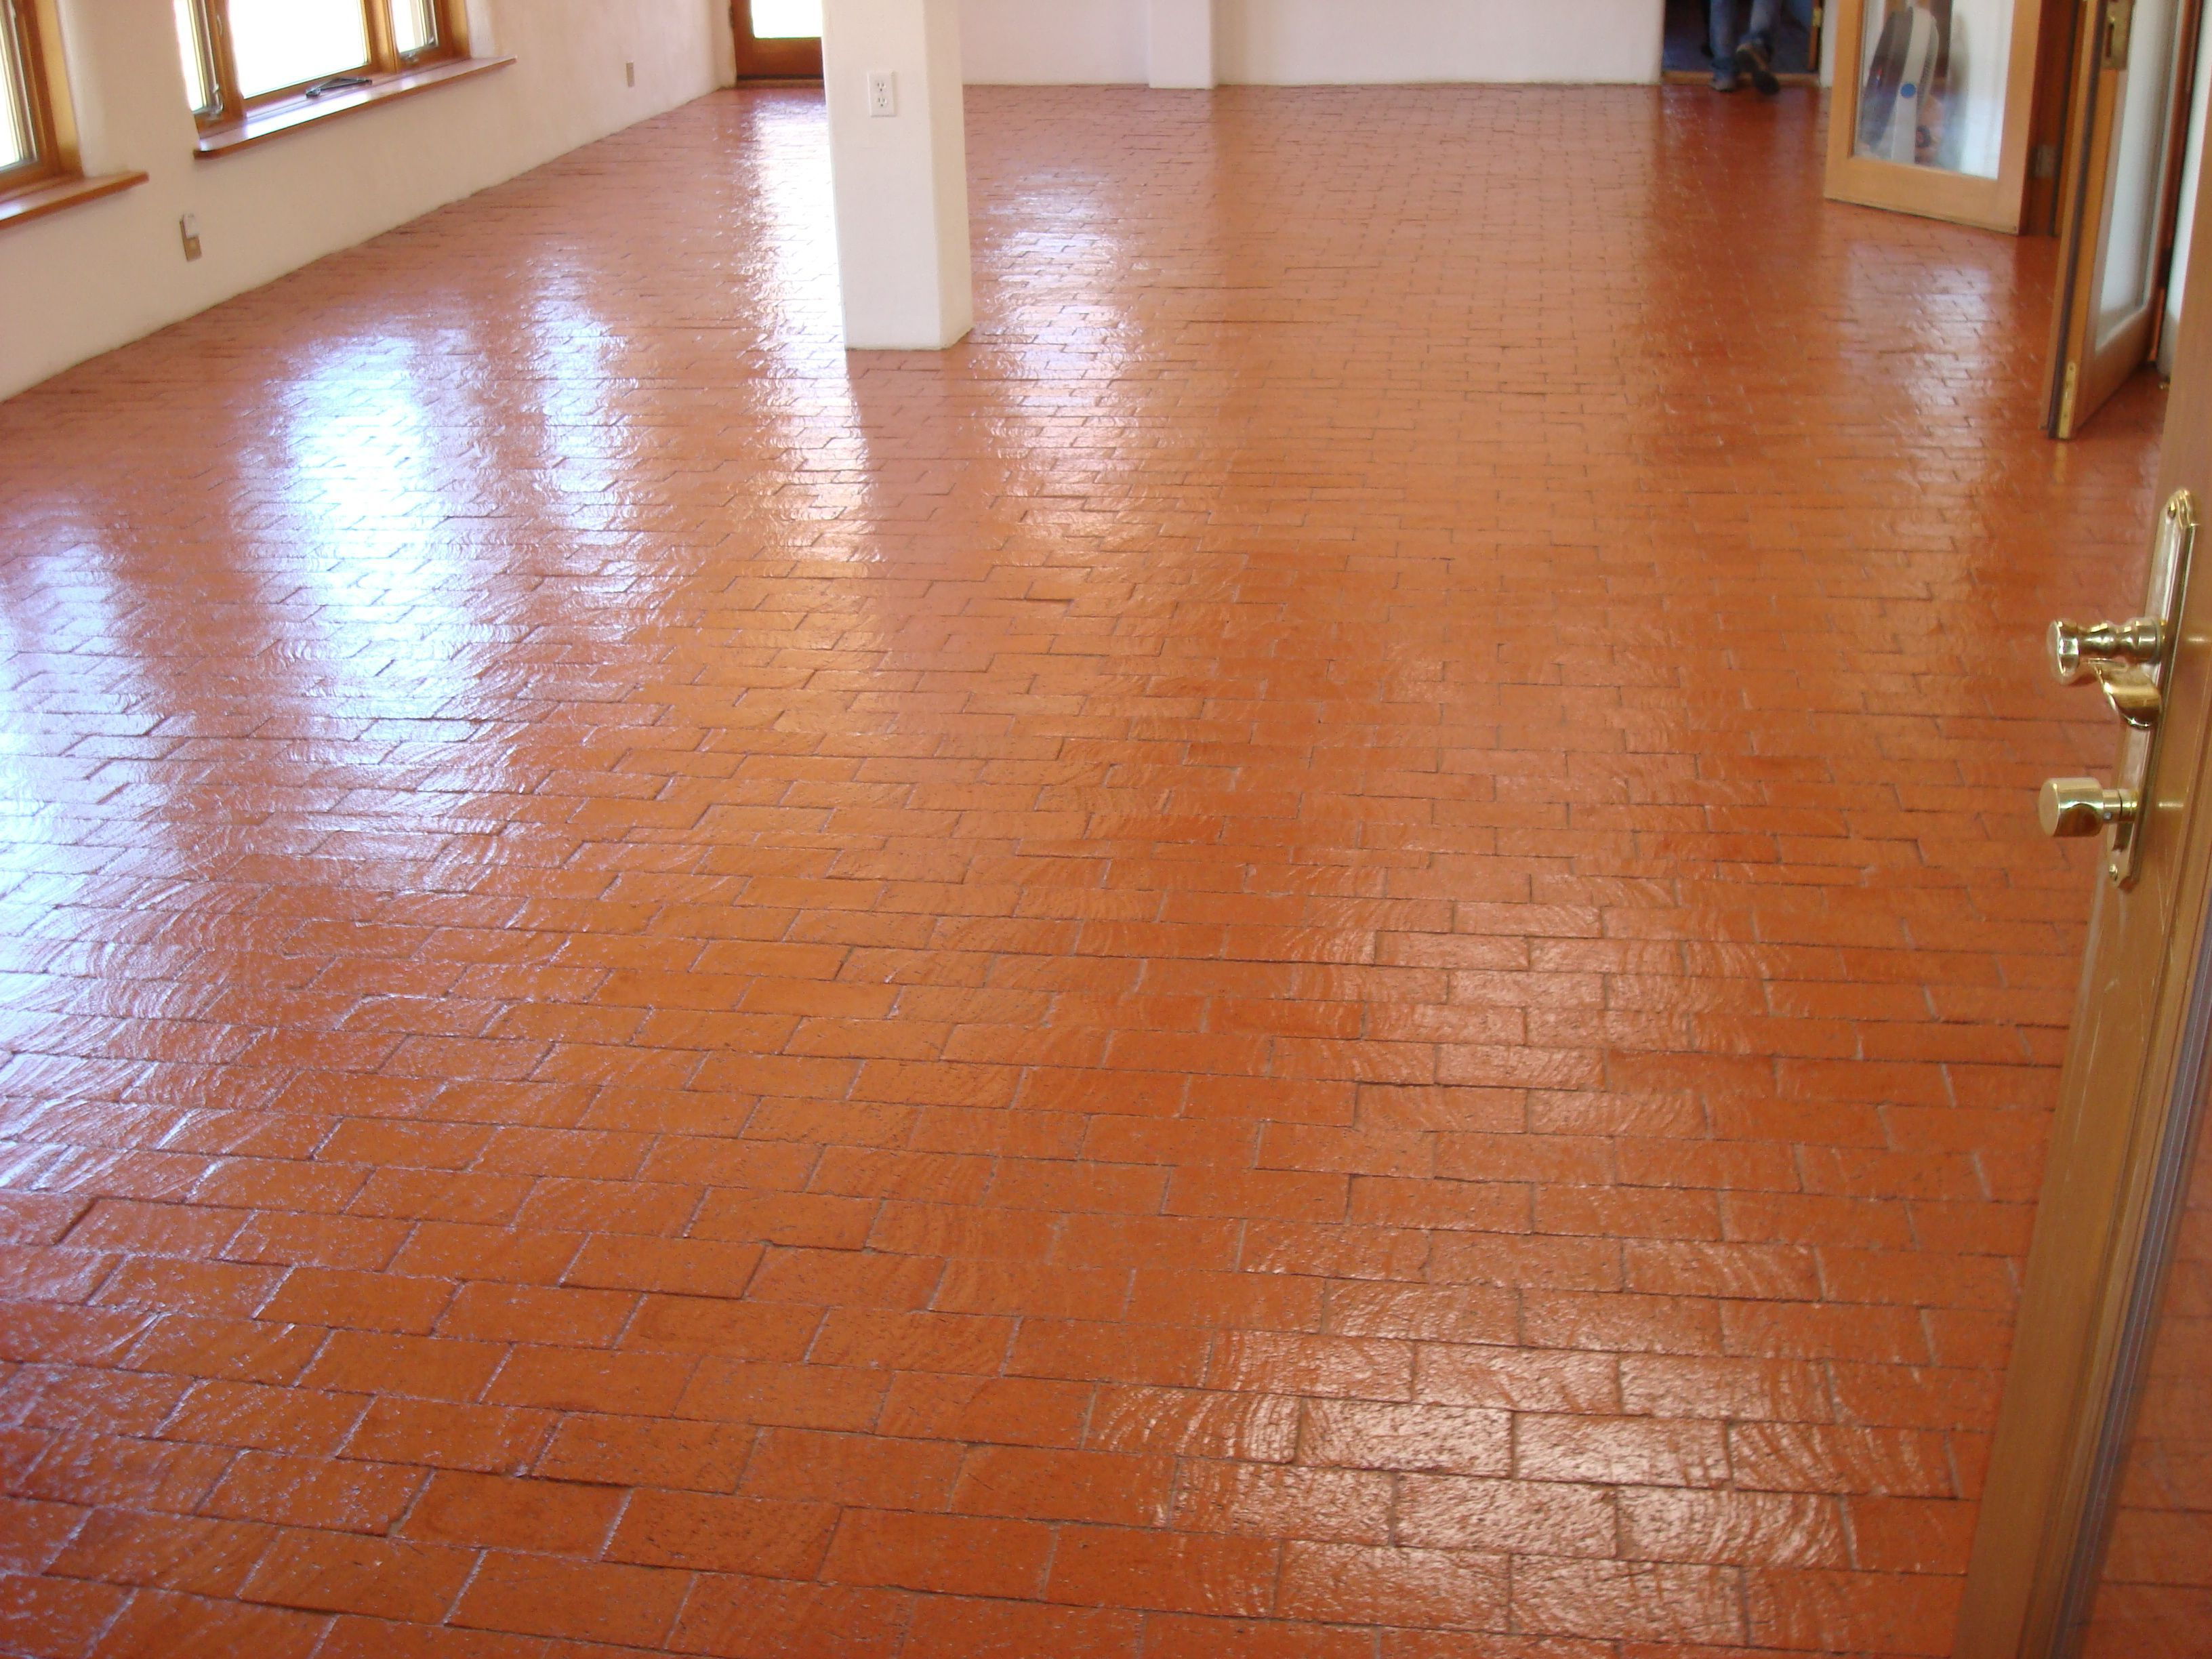 Brick Floors In The House Shiny Cleaned And Sealed Brick Floors Mofab Brick Flooring Brick Kitchen How To Clean Brick